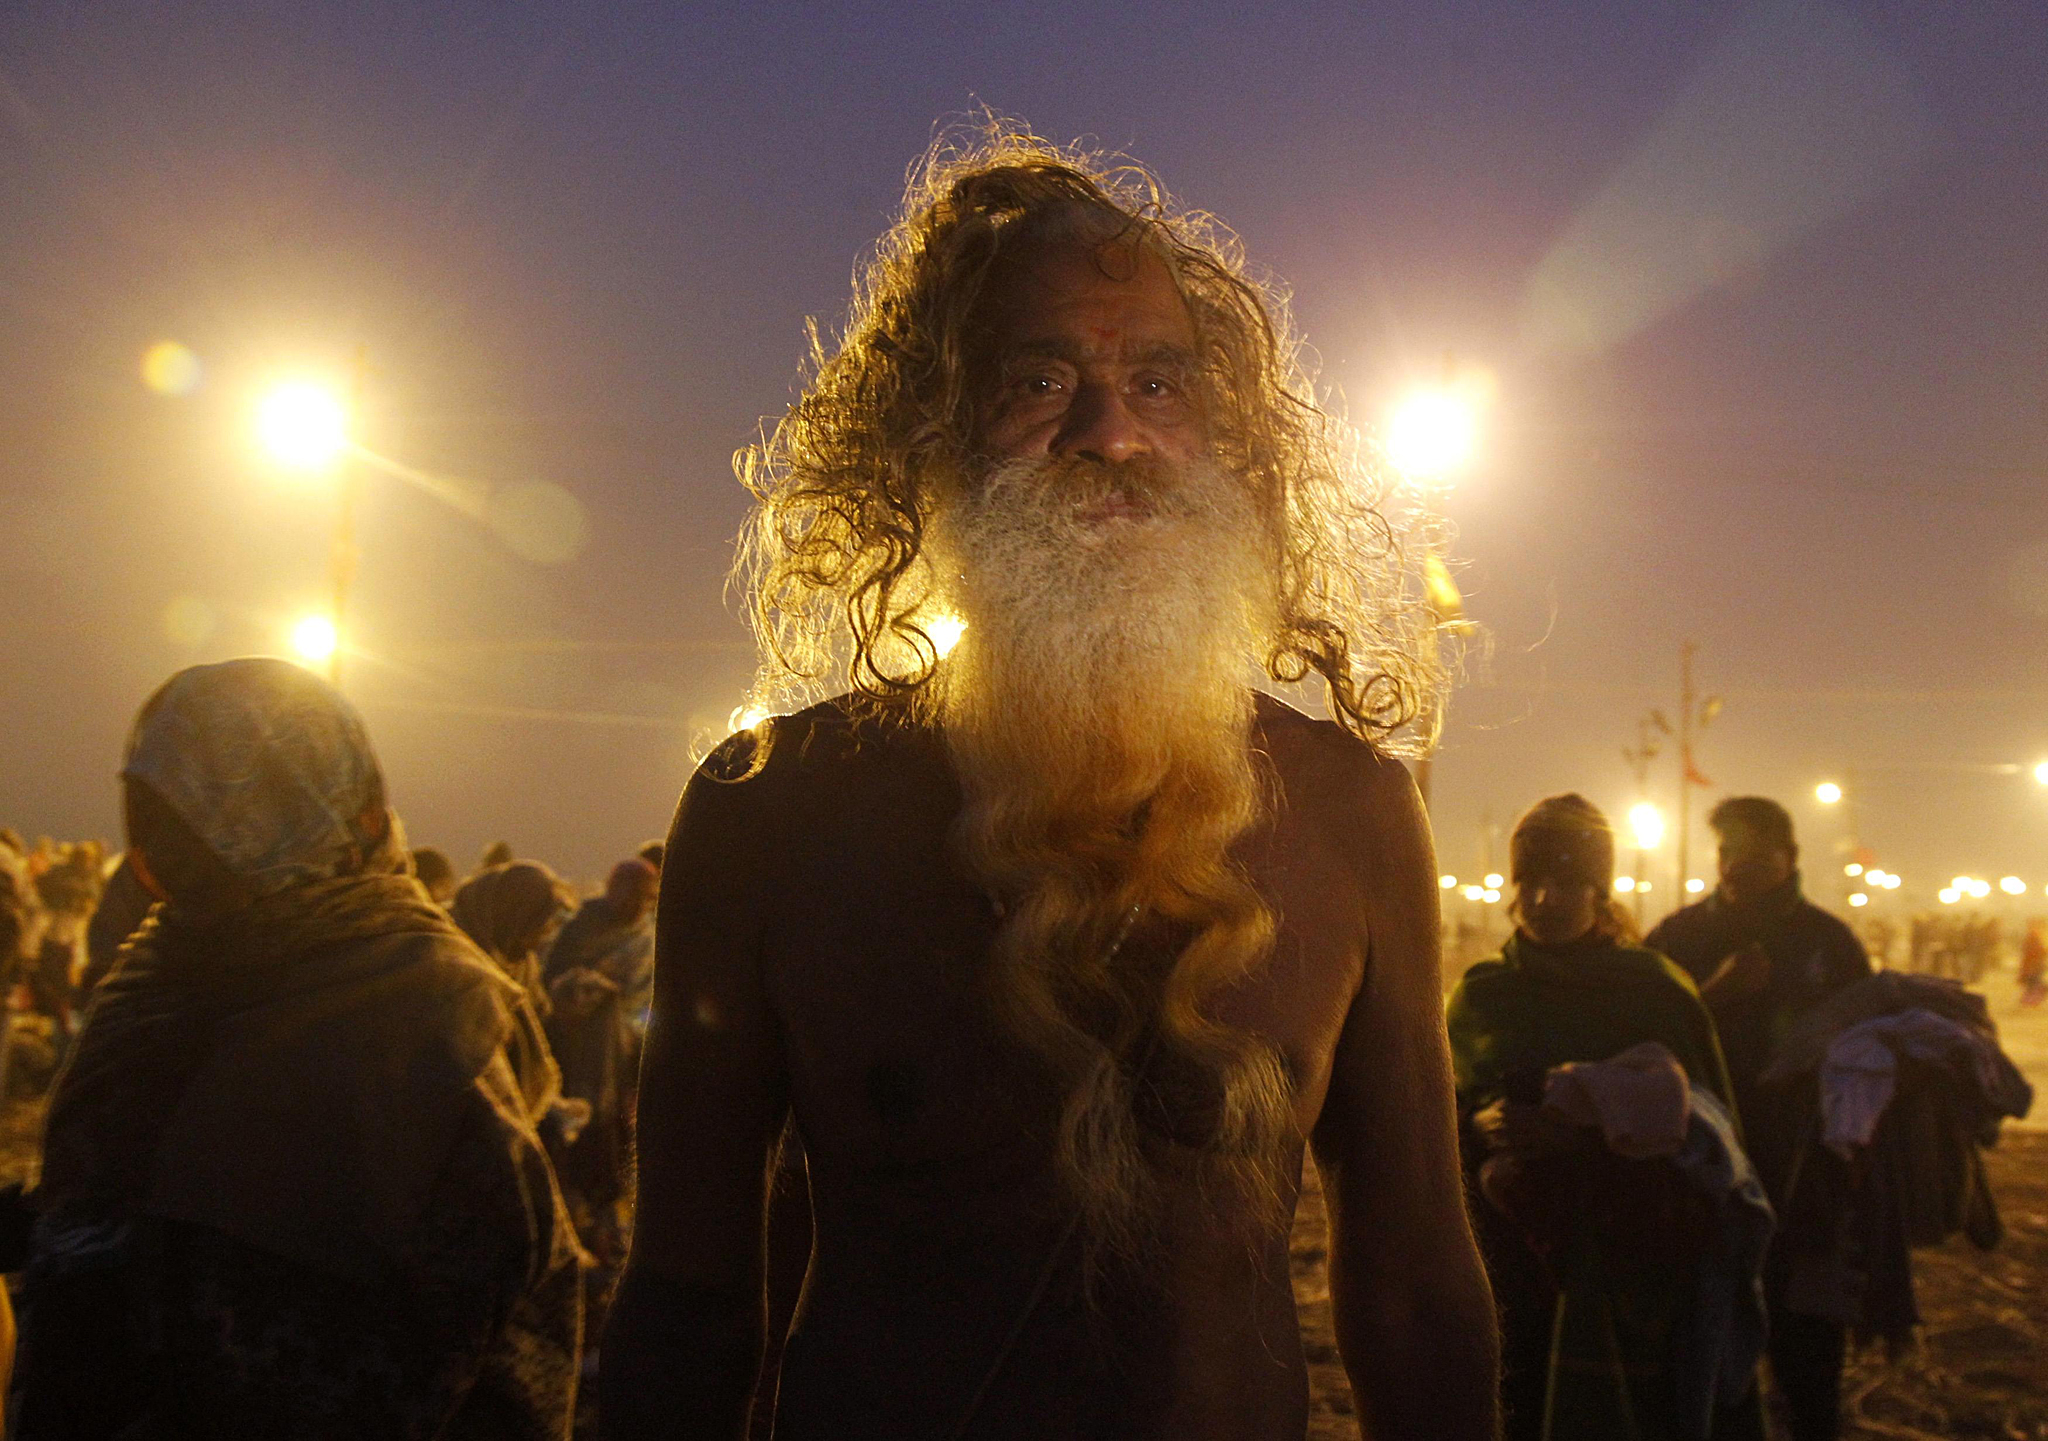 A Sadhu or a Hindu holyman arrives to take a holy dip at Sangam during Magh Mela in Allahabad...A Sadhu or a Hindu holyman arrives to take a holy dip at Sangam during Magh Mela in the northern Indian city of Allahabad January 5, 2015. The festival is an annual religious event held during the Hindu month of Magh, when thousands of devotees take a holy dip in the waters of Sangam, the confluence of the Ganges, Yamuna and Saraswati rivers. REUTERS/Jitendra Prakash (INDIA - Tags: RELIGION SOCIETY)